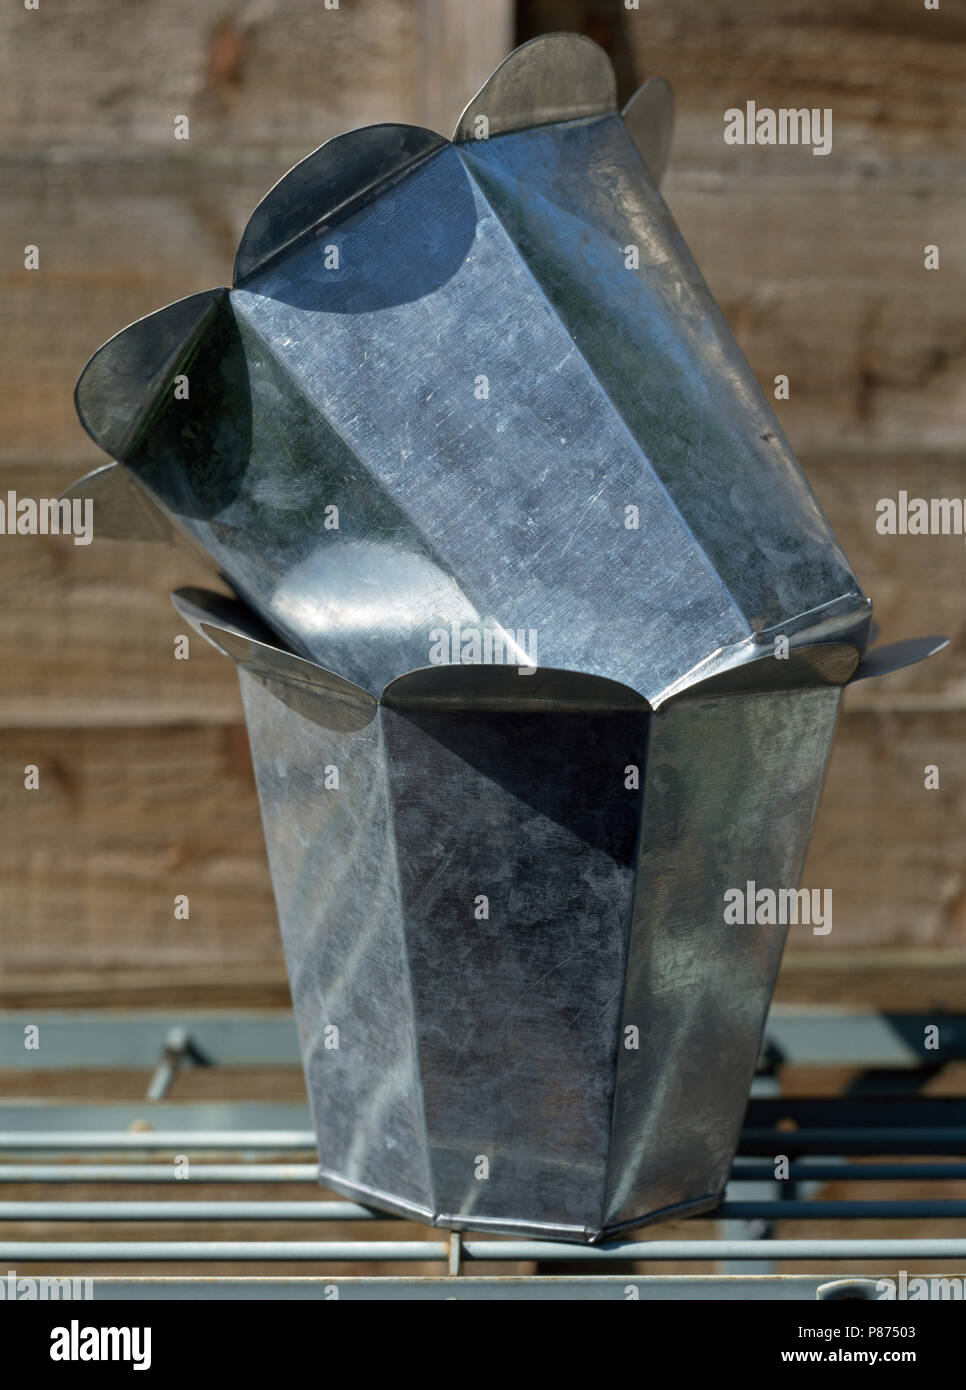 Close-up of galvanized zinc pots before being painted - Stock Image